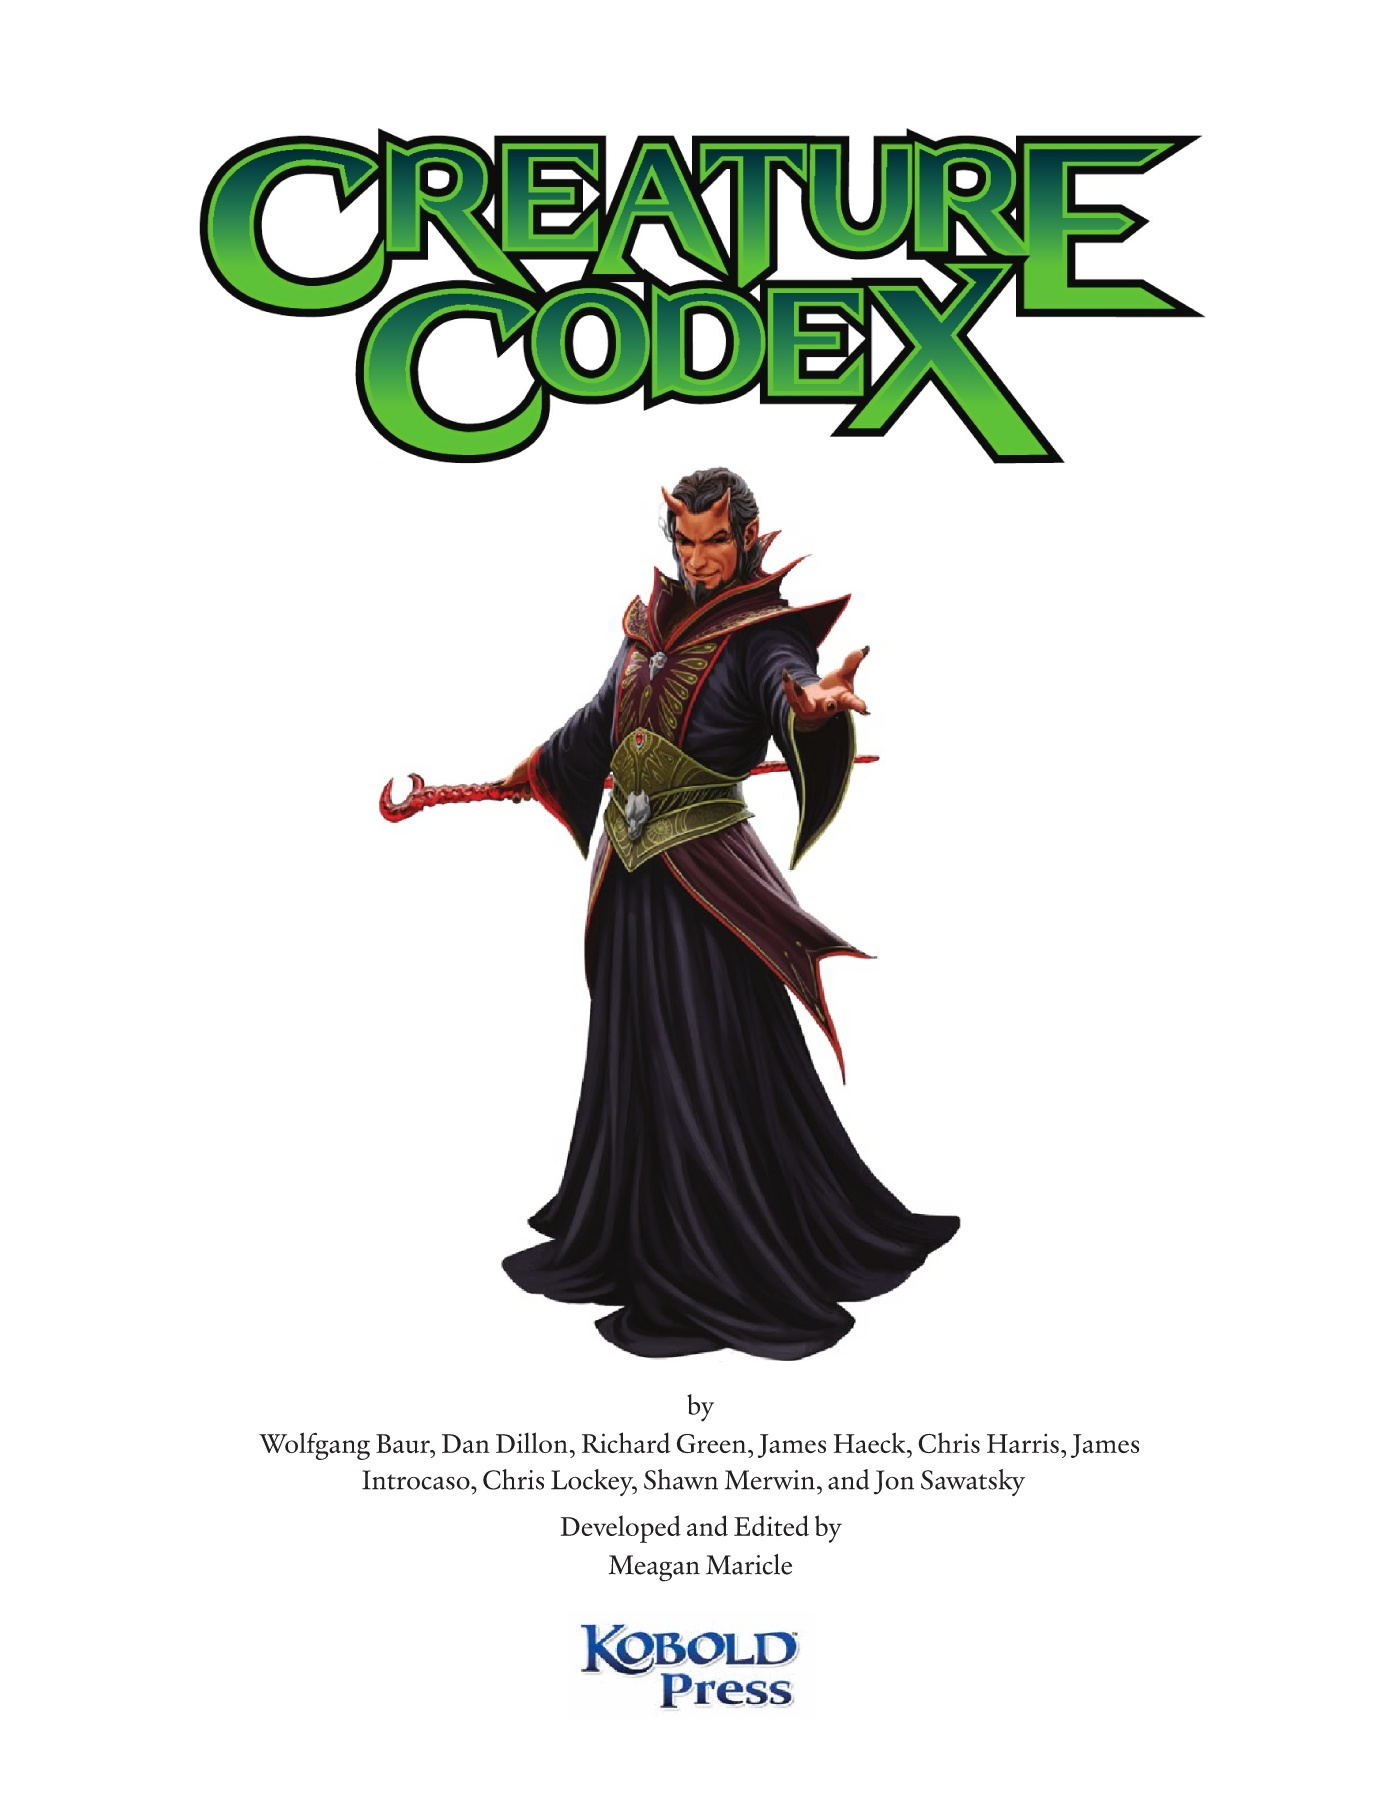 5e Creature Codex Pages 1 - 50 - Text Version | AnyFlip